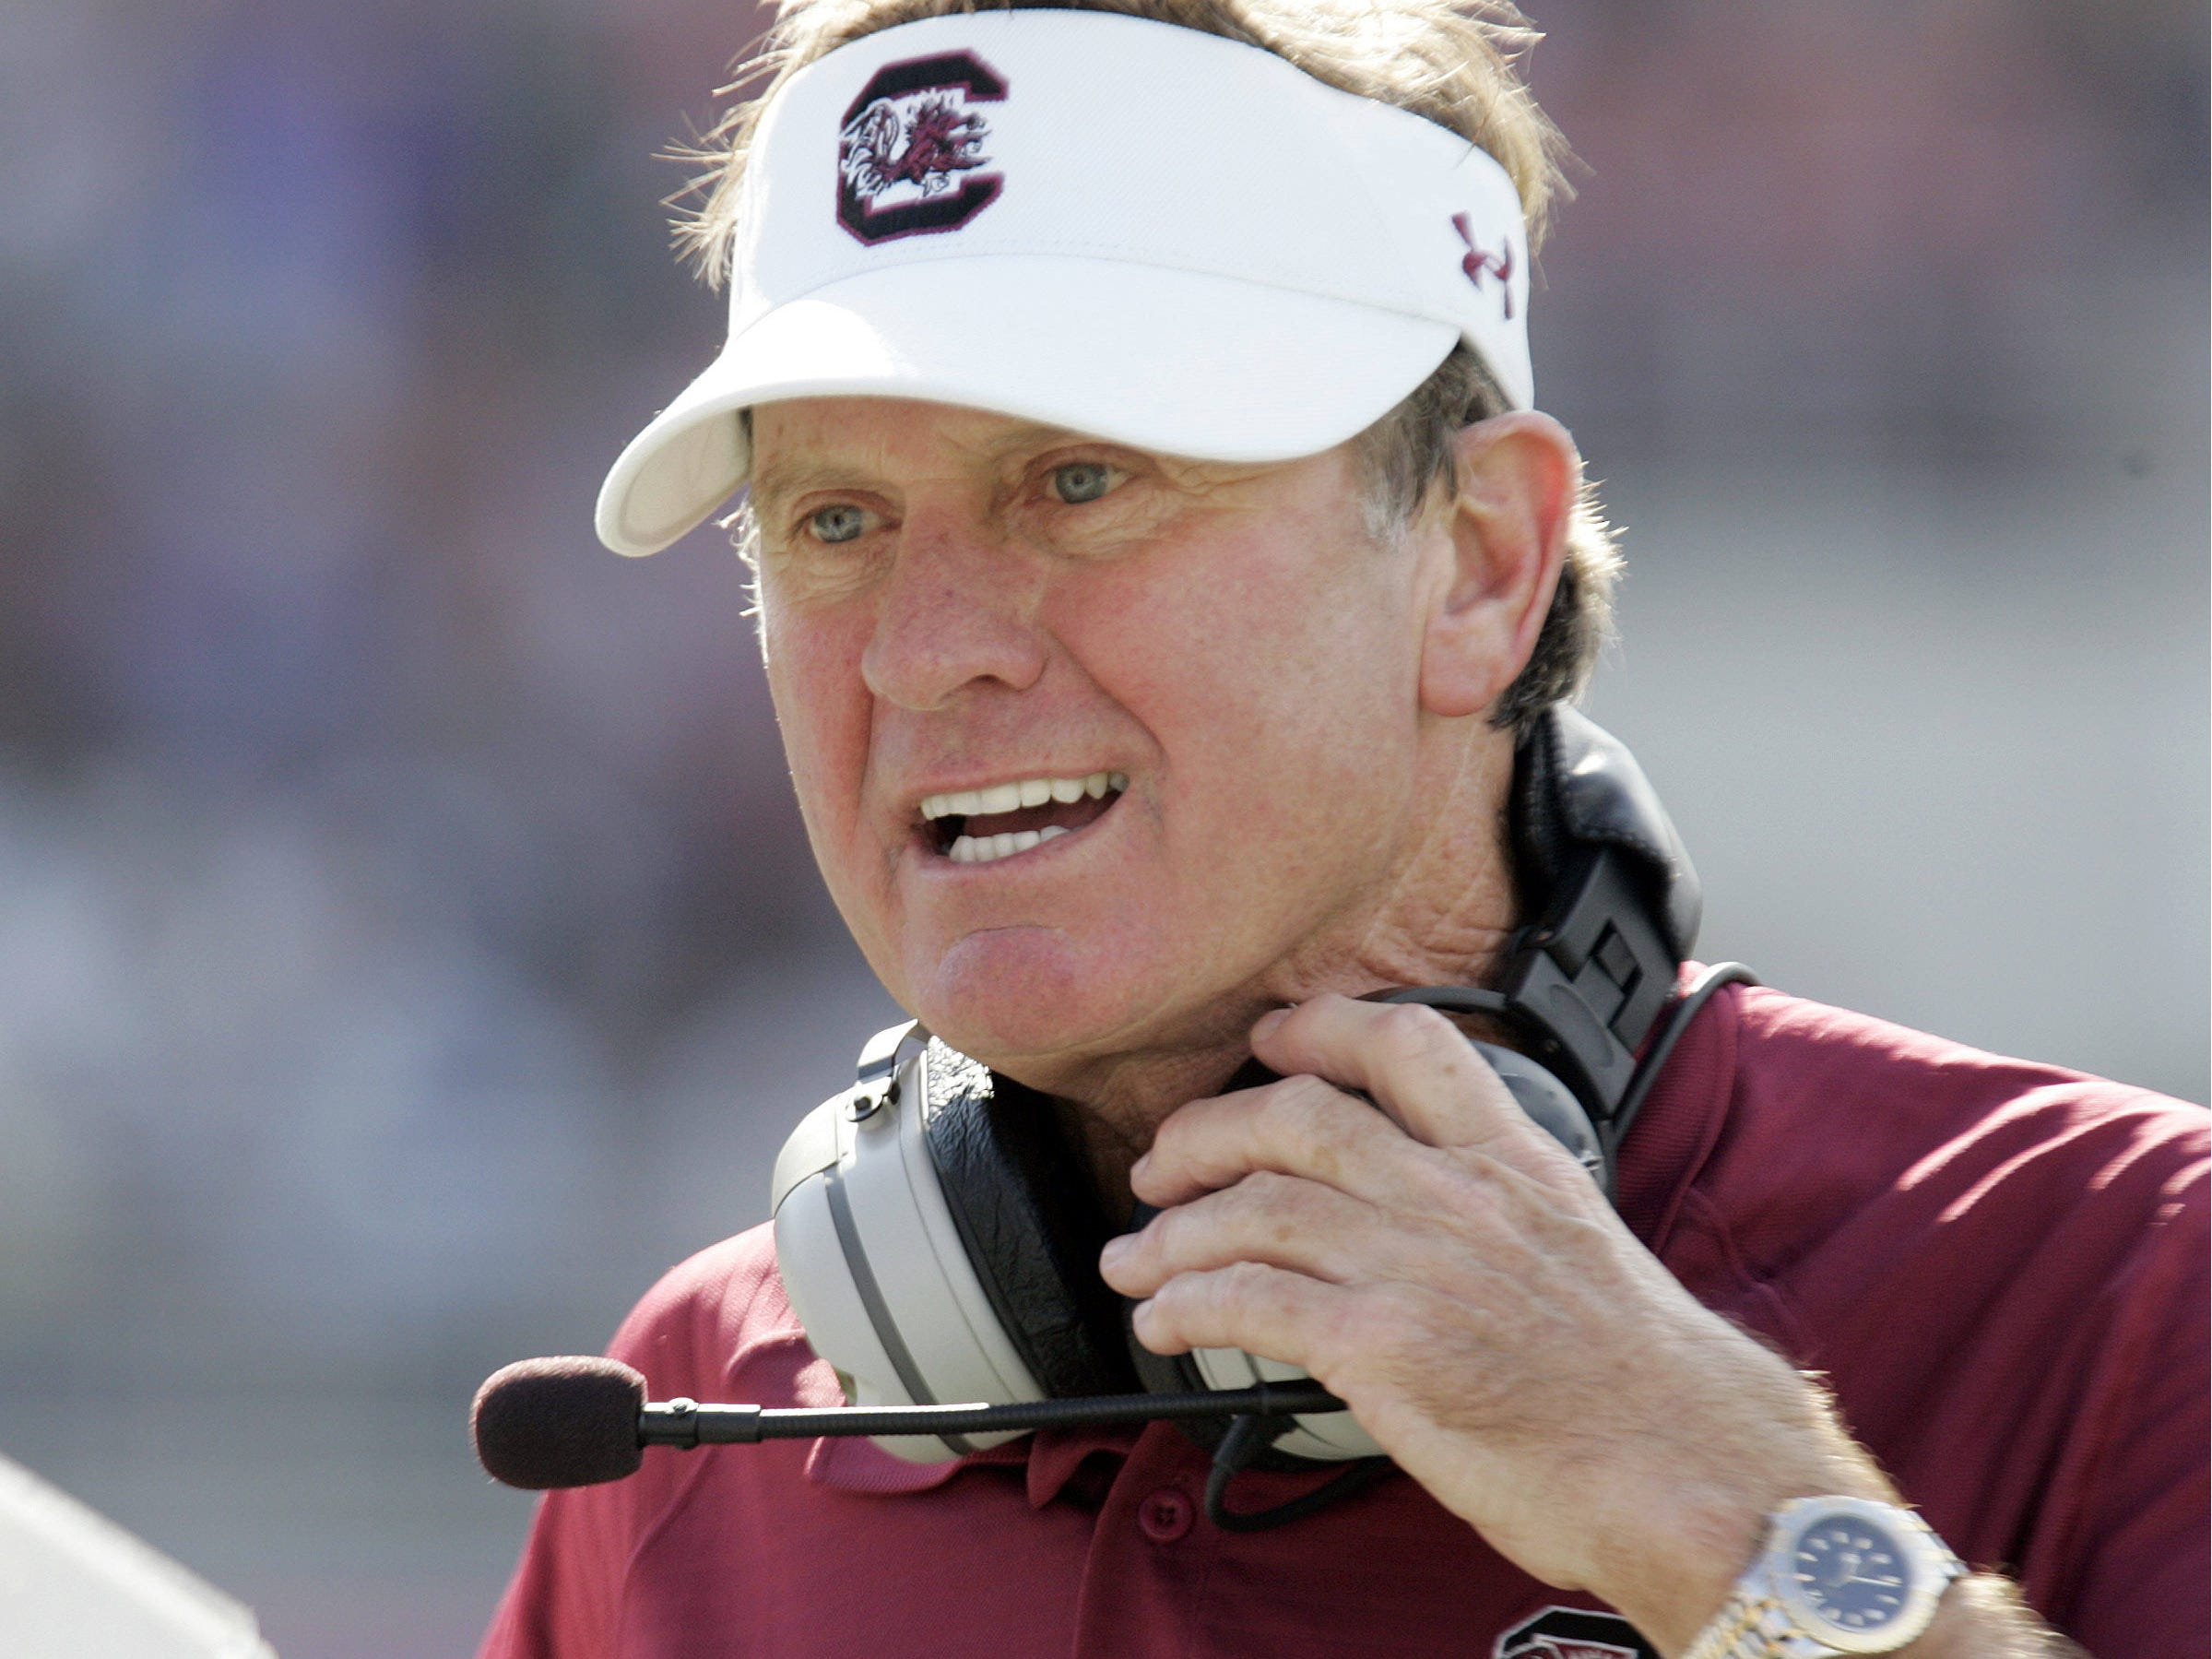 South Carolina football coach Steve Spurrier and the Gamecocks face LSU on Saturday.